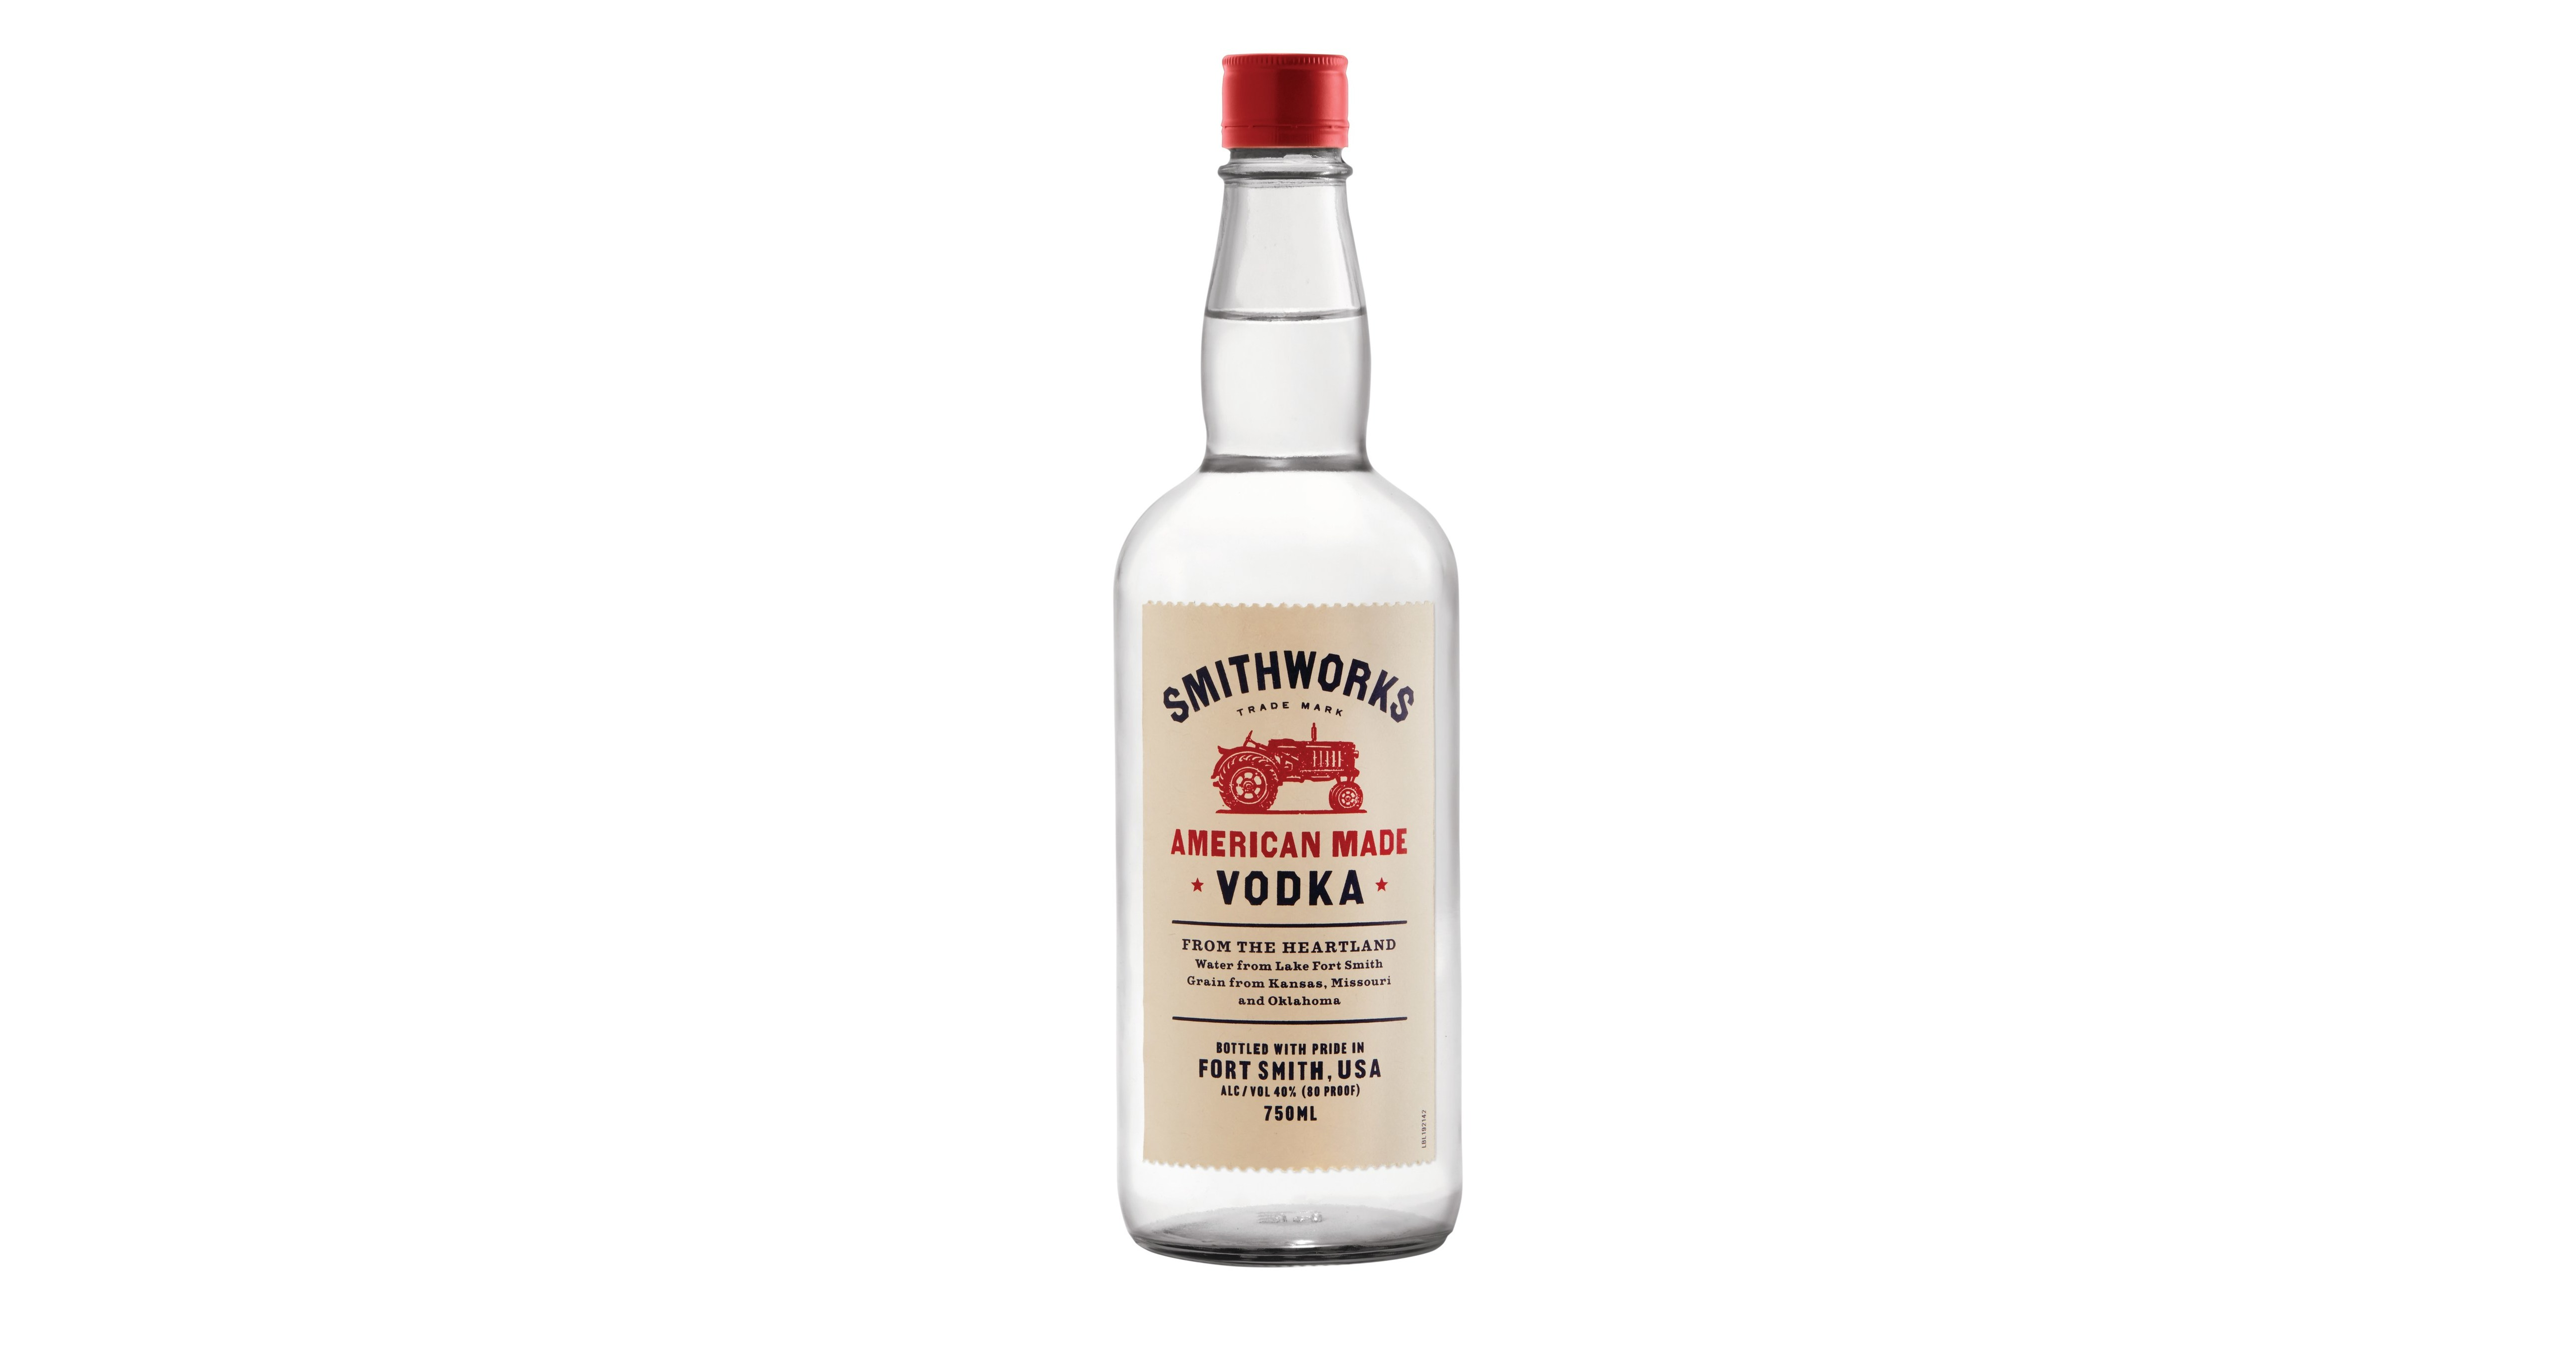 Keystone Insurance Company >> Smithworks® Vodka Makes Its Debut In The Mid-Atlantic Expanding To The Keystone State